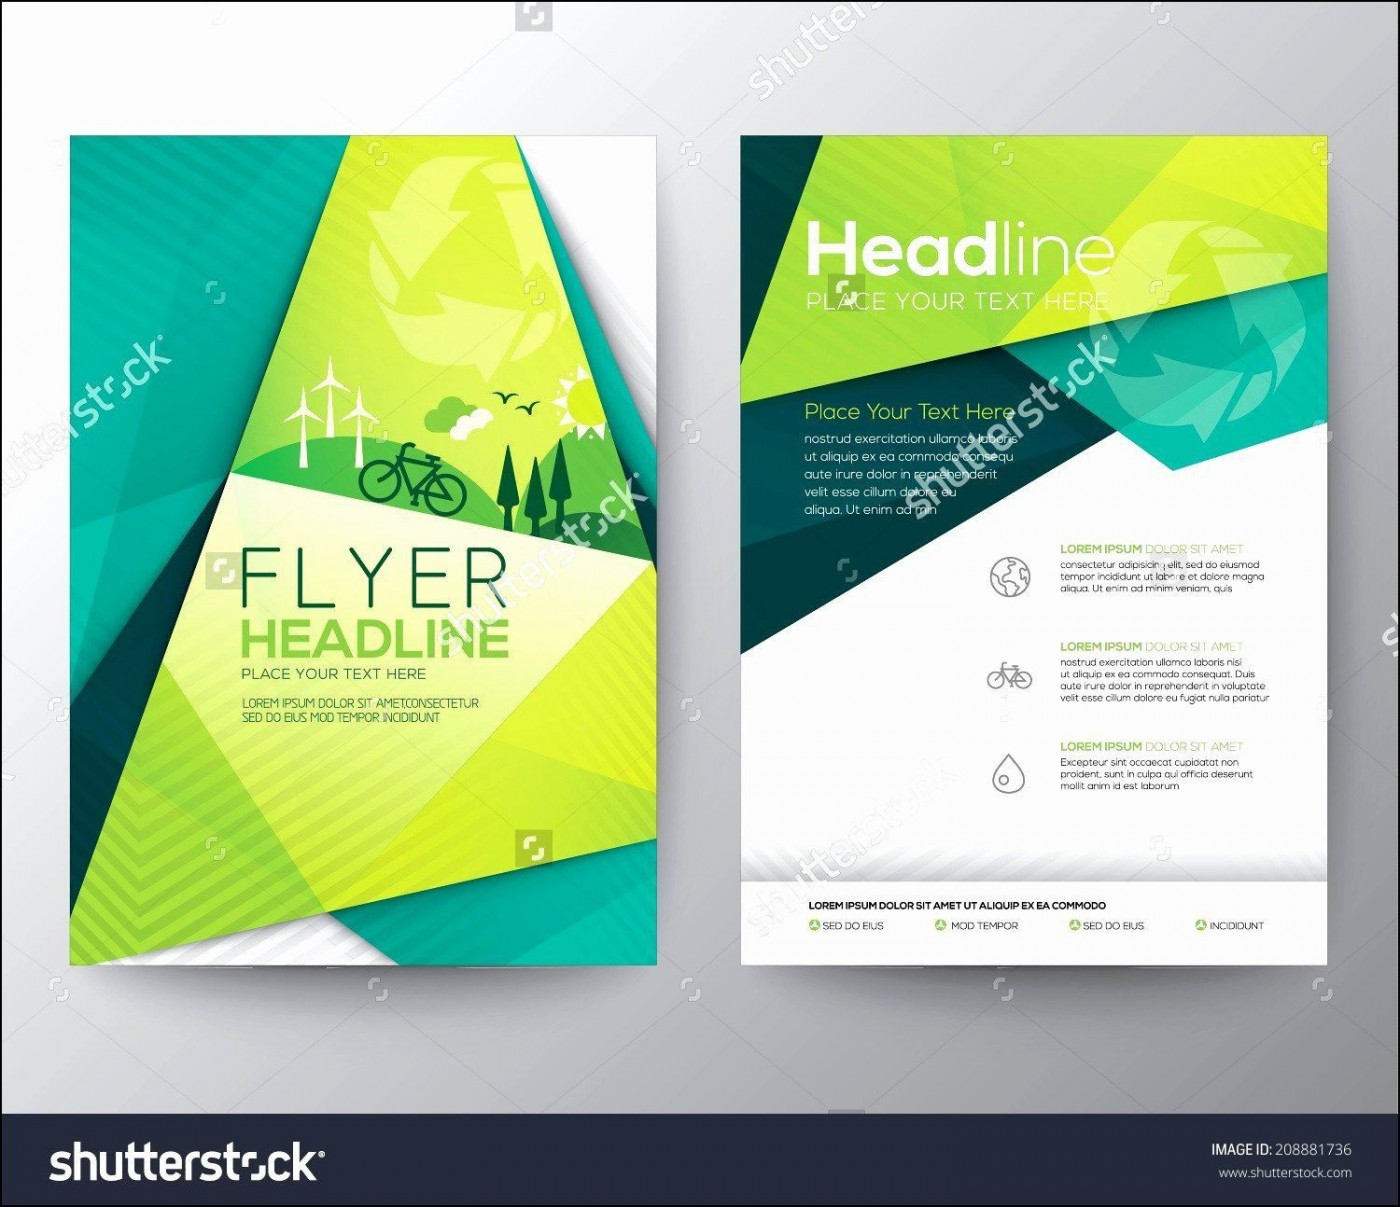 004 Amazing Photoshop Brochure Template Psd Free Download High Resolution 1400